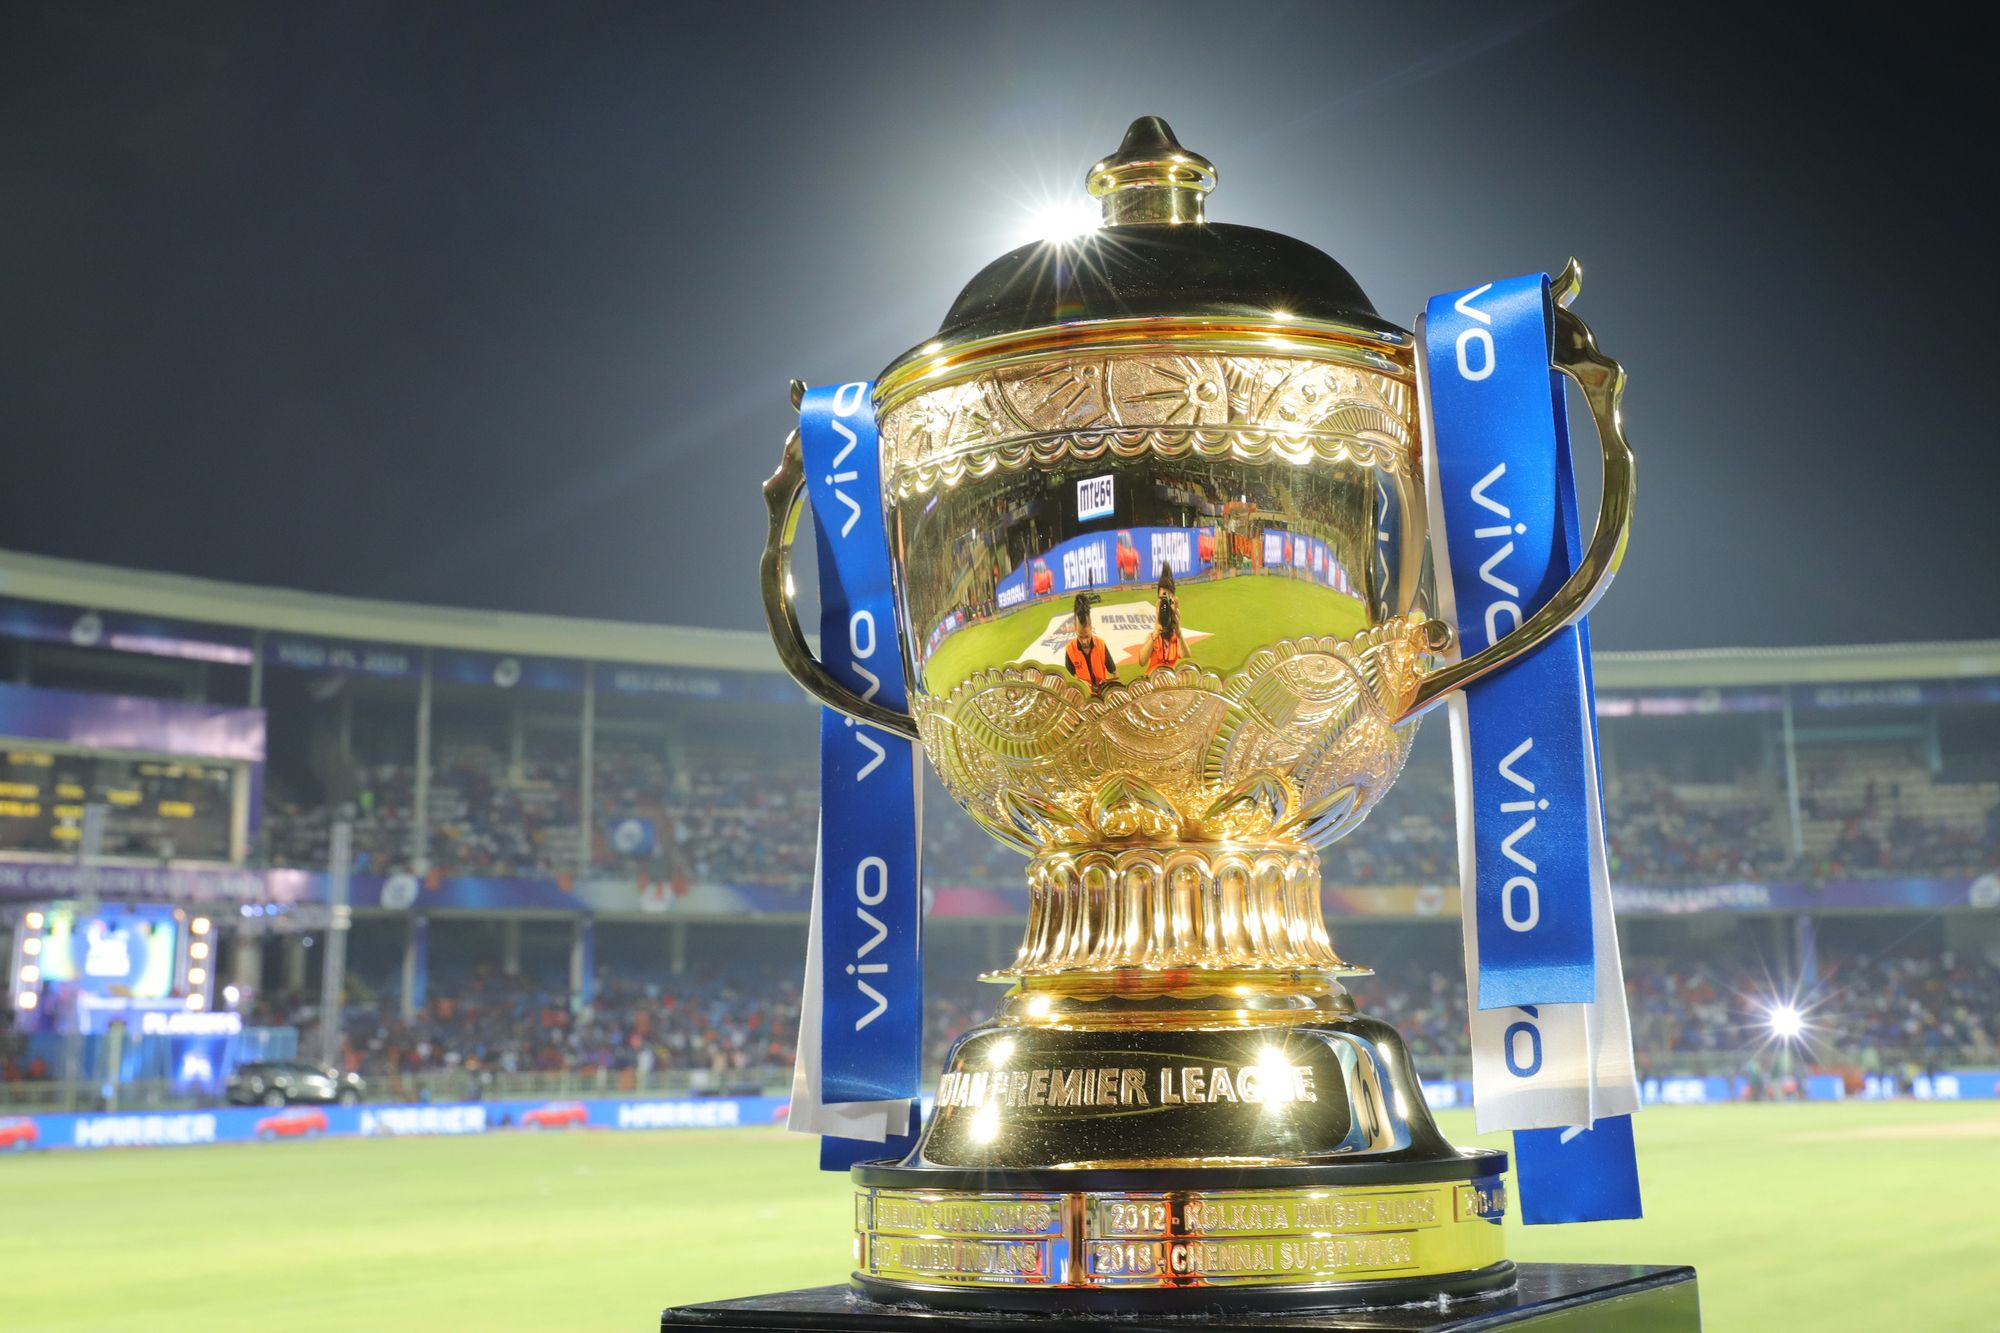 UAE to host IPL 2020, BCCI not in condition of saying anything for now